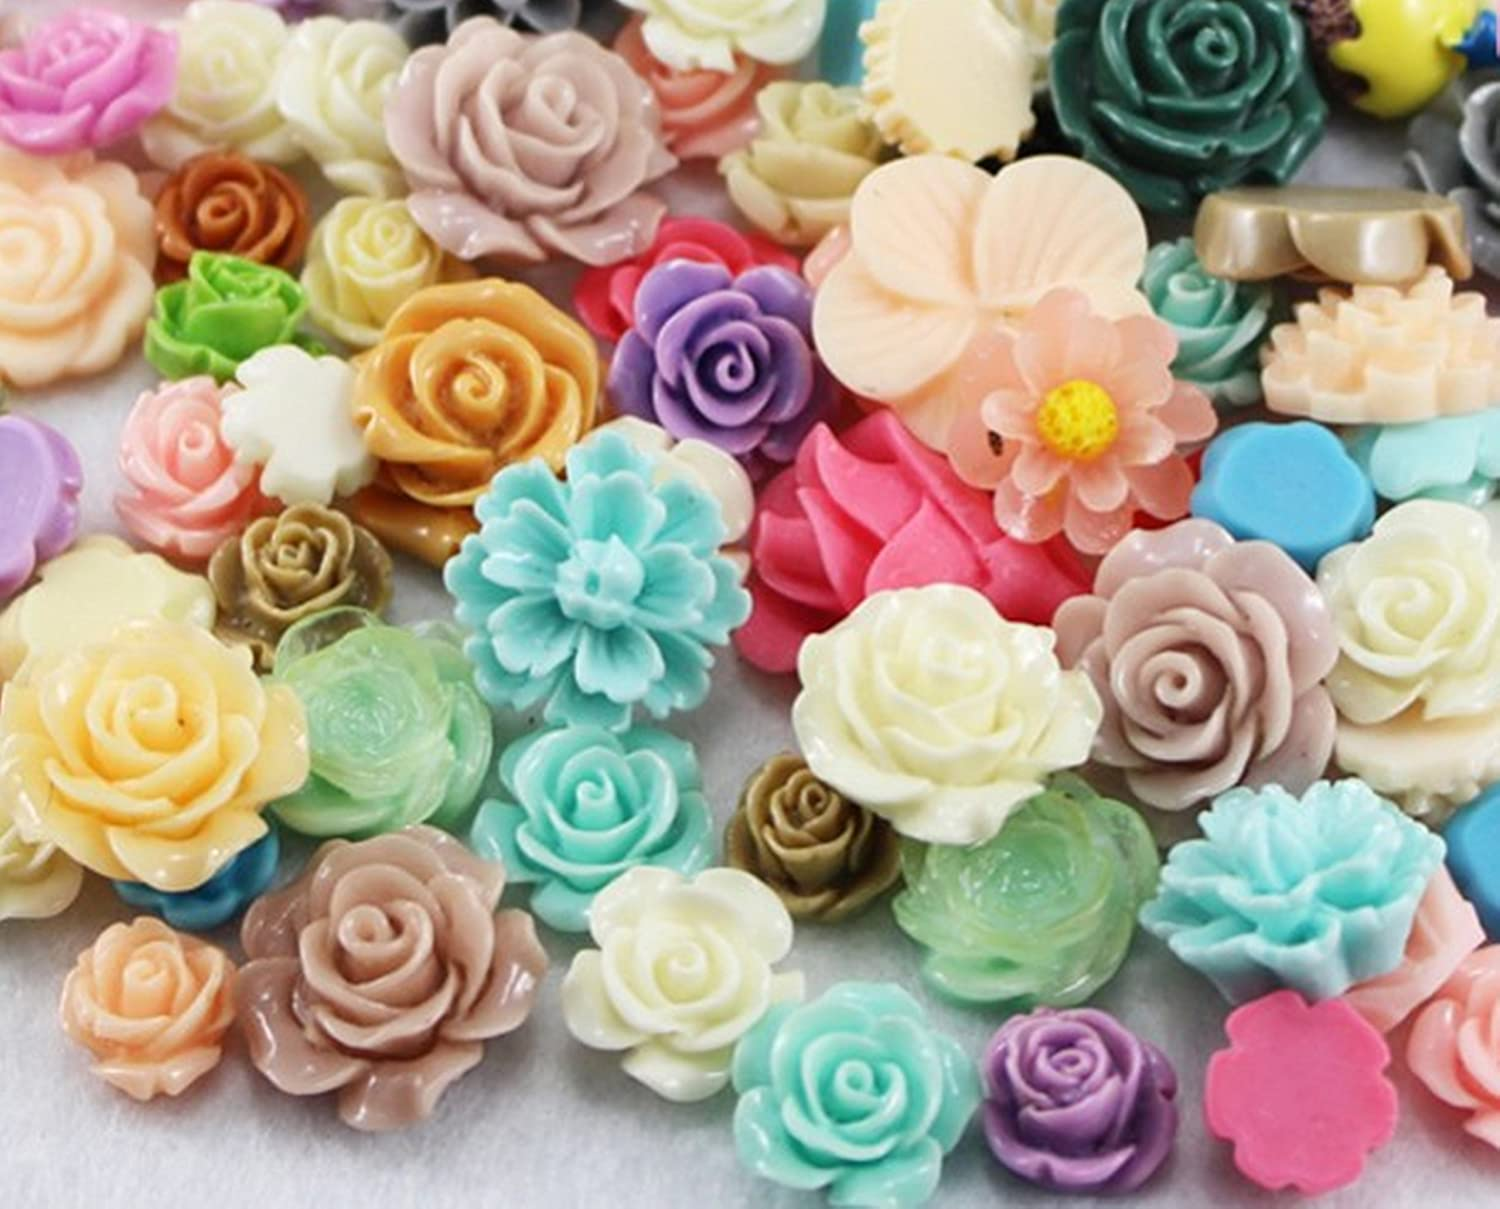 50g Mixed Assorted Flat Back Resin Flower Beads Craft DIY Hairpin Headwear/Phone/Scrapbooking Ava